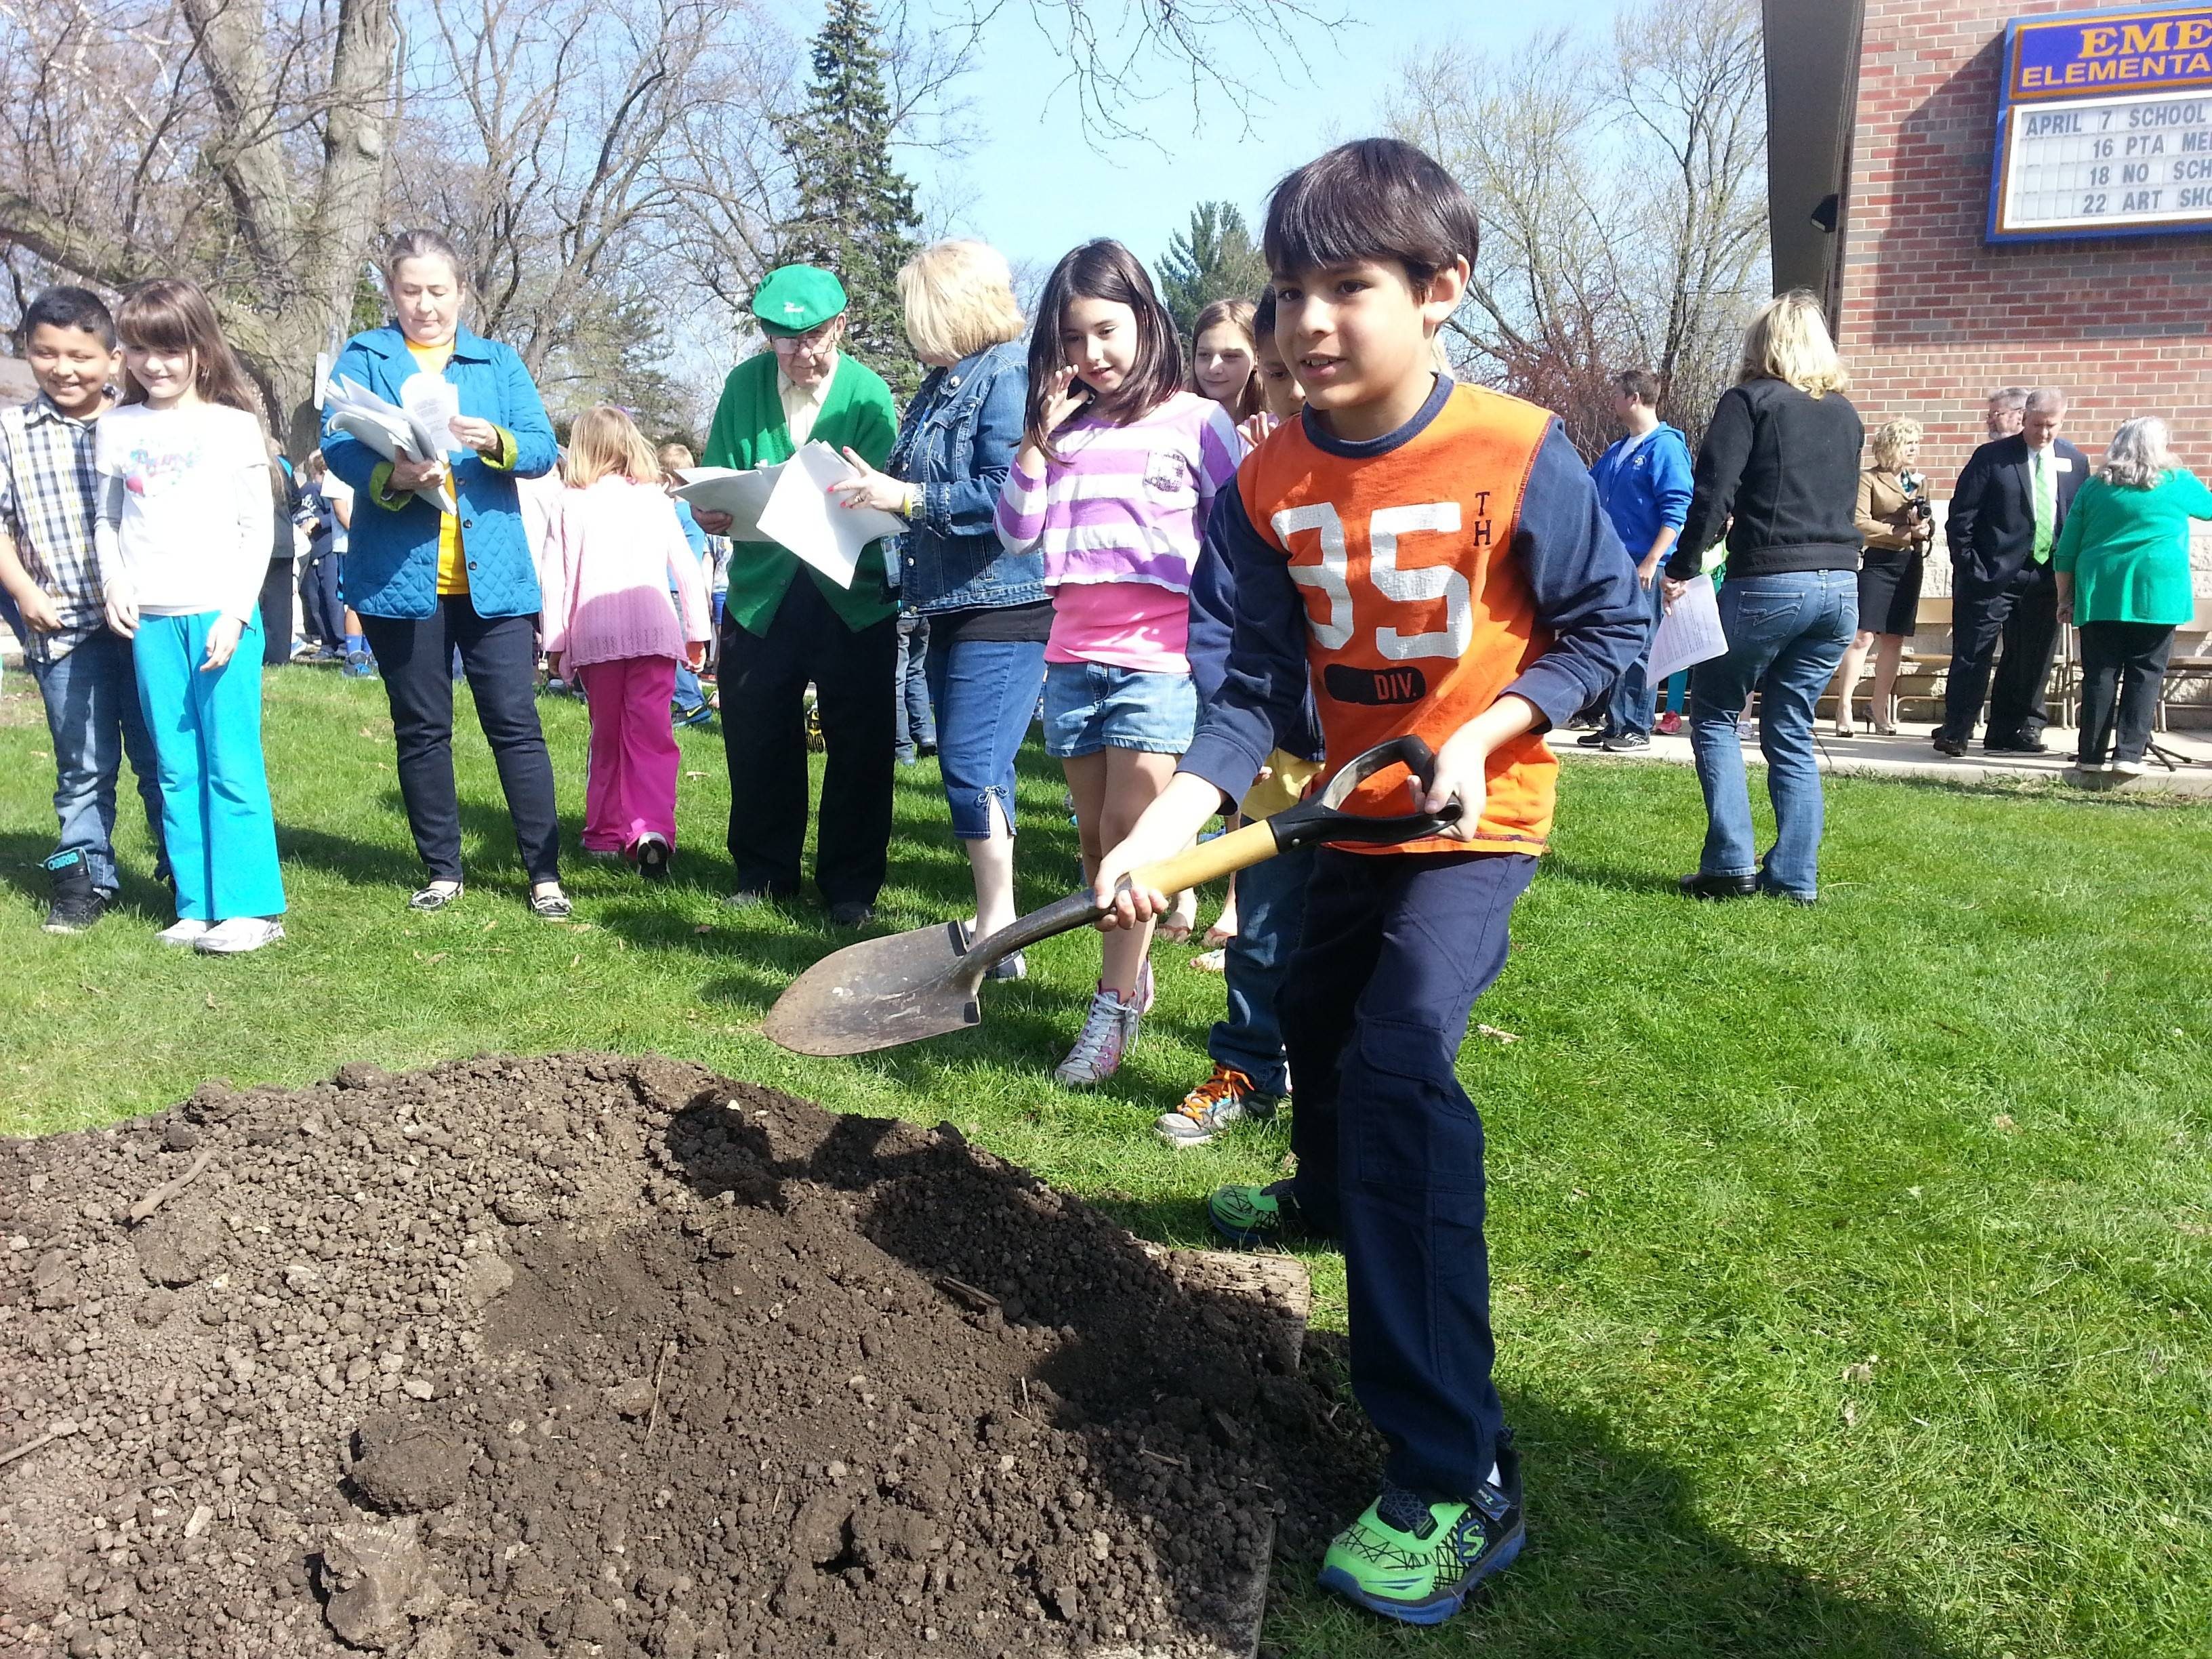 A student at Emerson Elementary School in Wheaton helps plant a white oak tree Friday in celebration of Arbor Day.